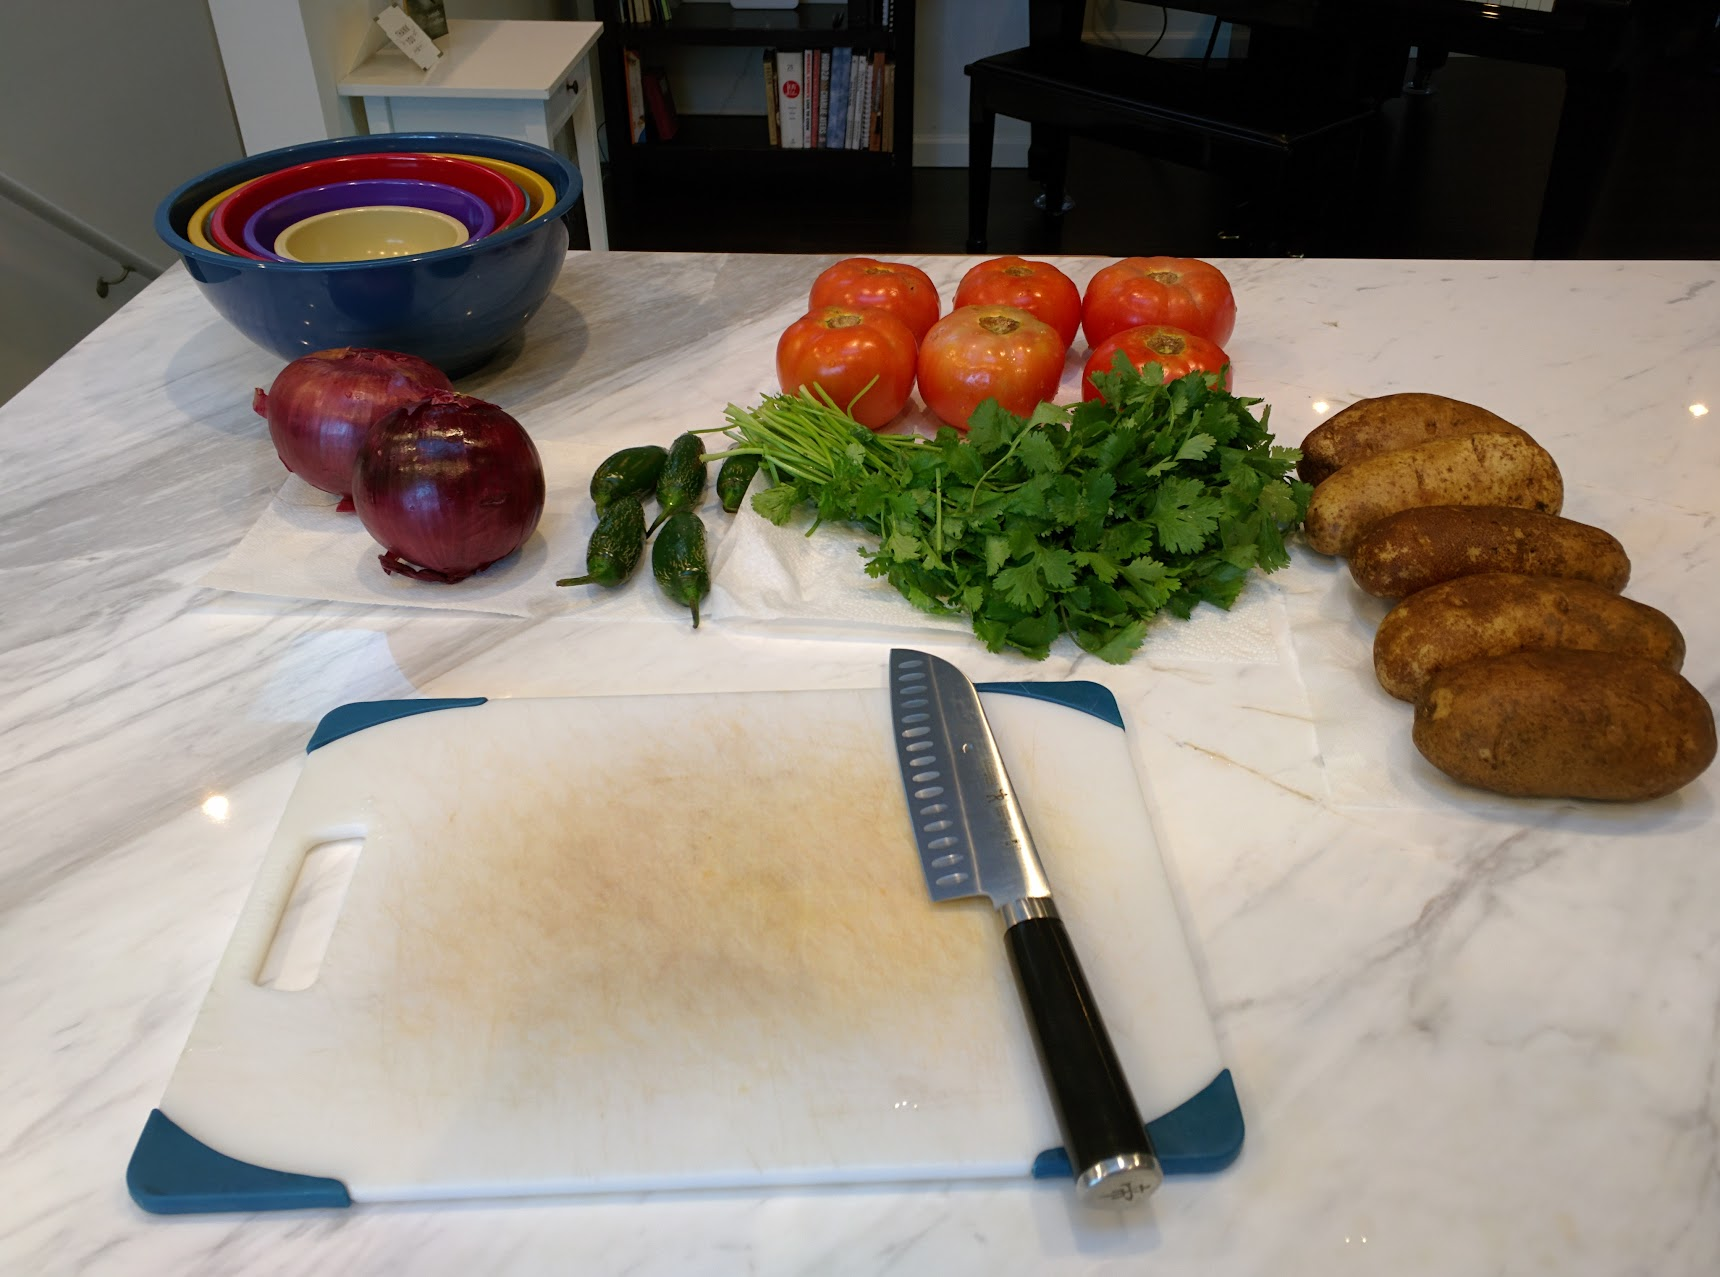 Cutting board, knife, bowls, and veggies